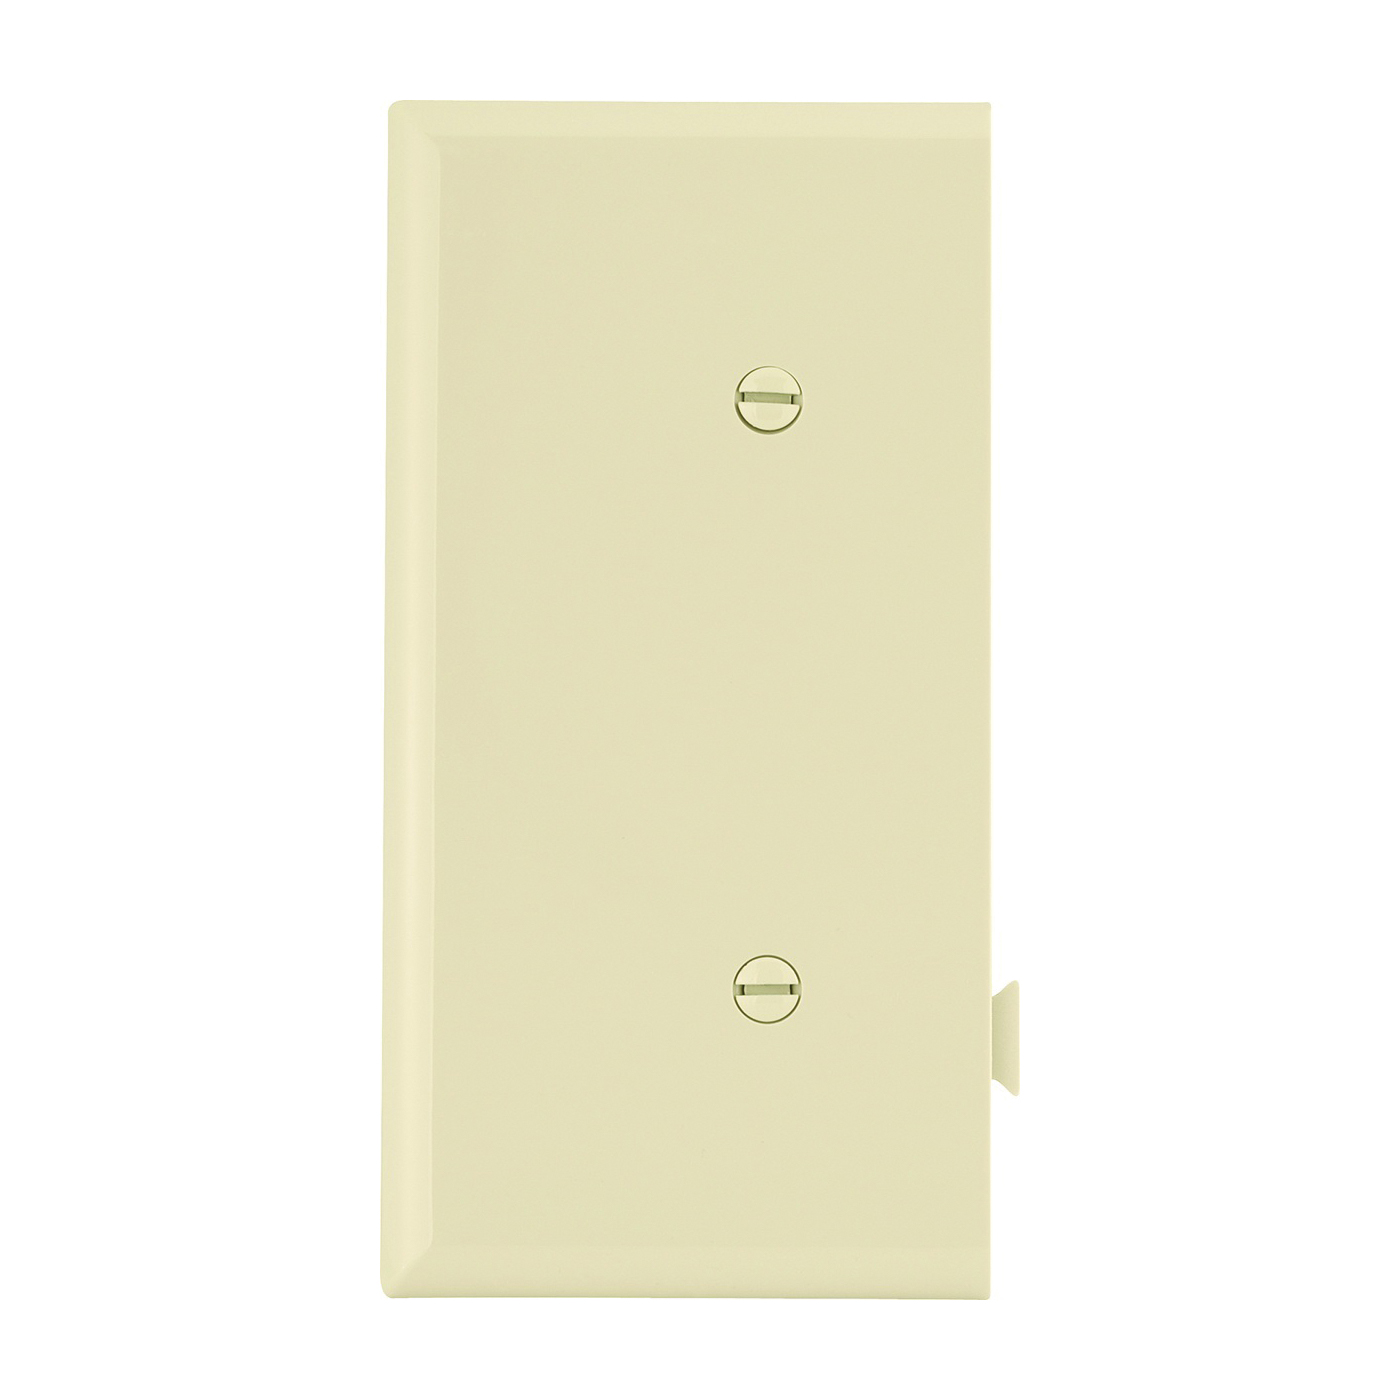 Picture of Eaton Cooper Wiring STE14V Wallplate, 2-9/16 in L, 4.84 in W, 1-Gang, Polycarbonate, Ivory, High-Gloss